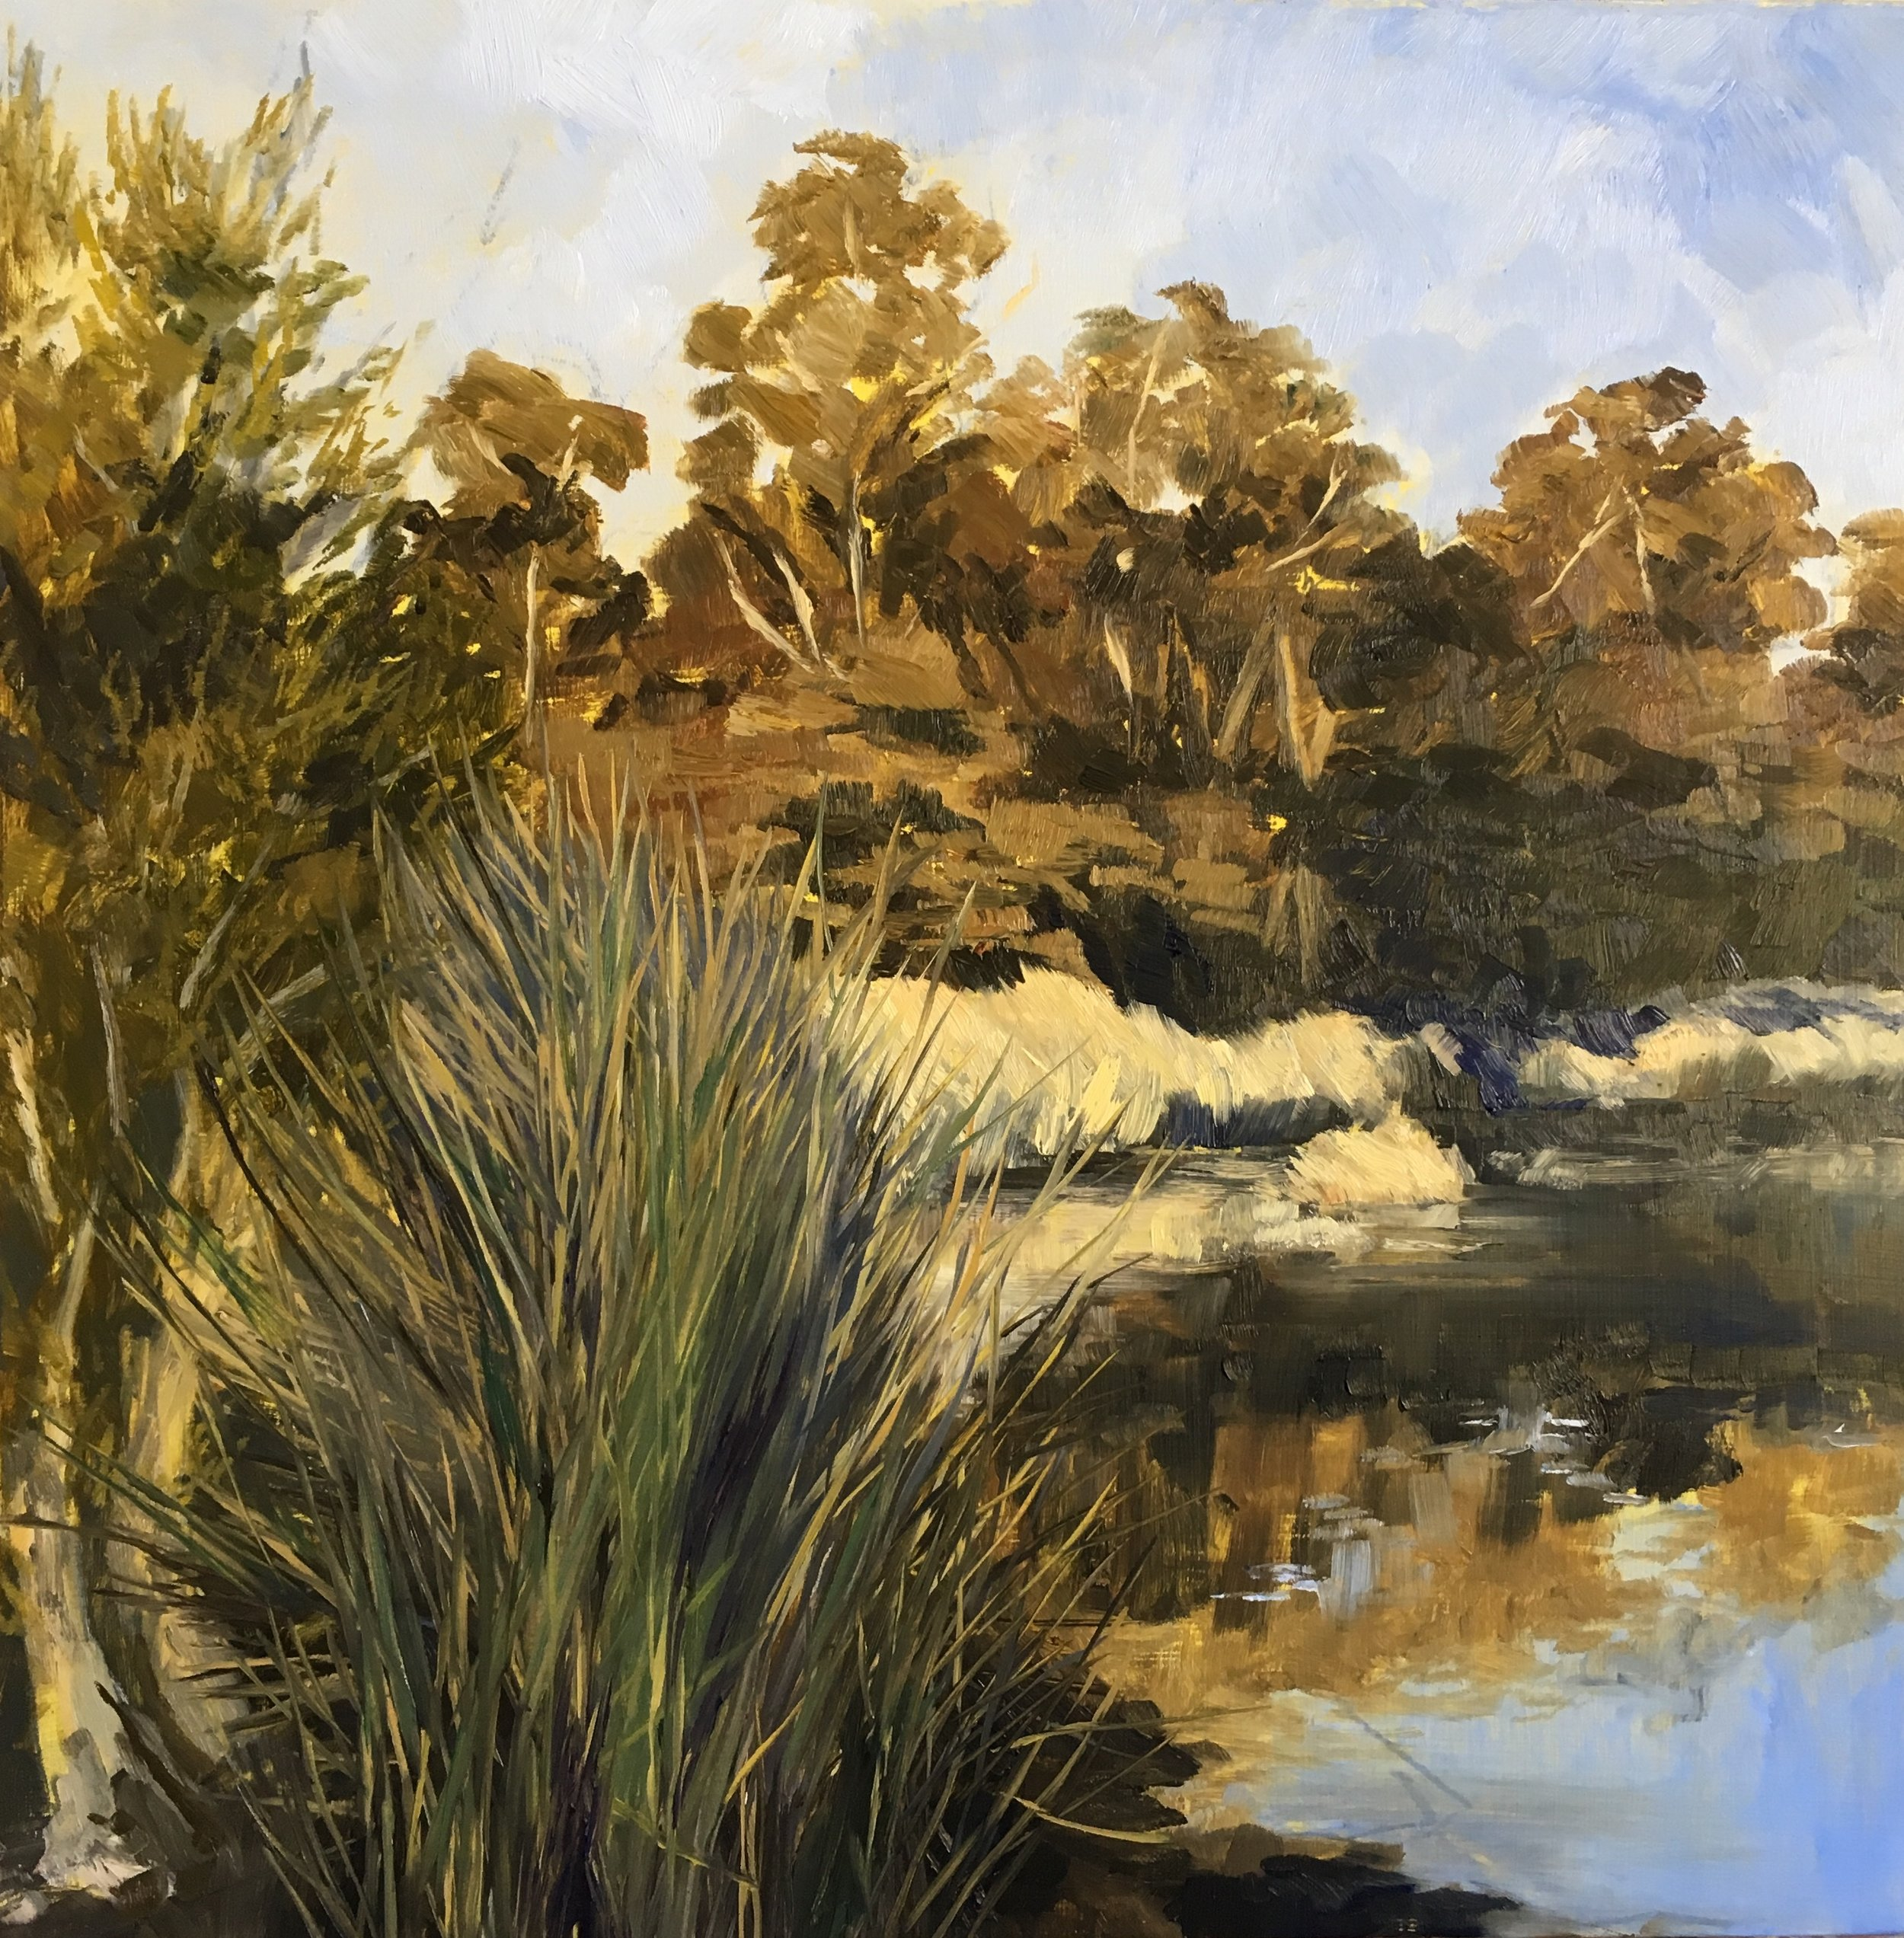 Morning Stillness, Oil on board, 40 x 40cm, $1100